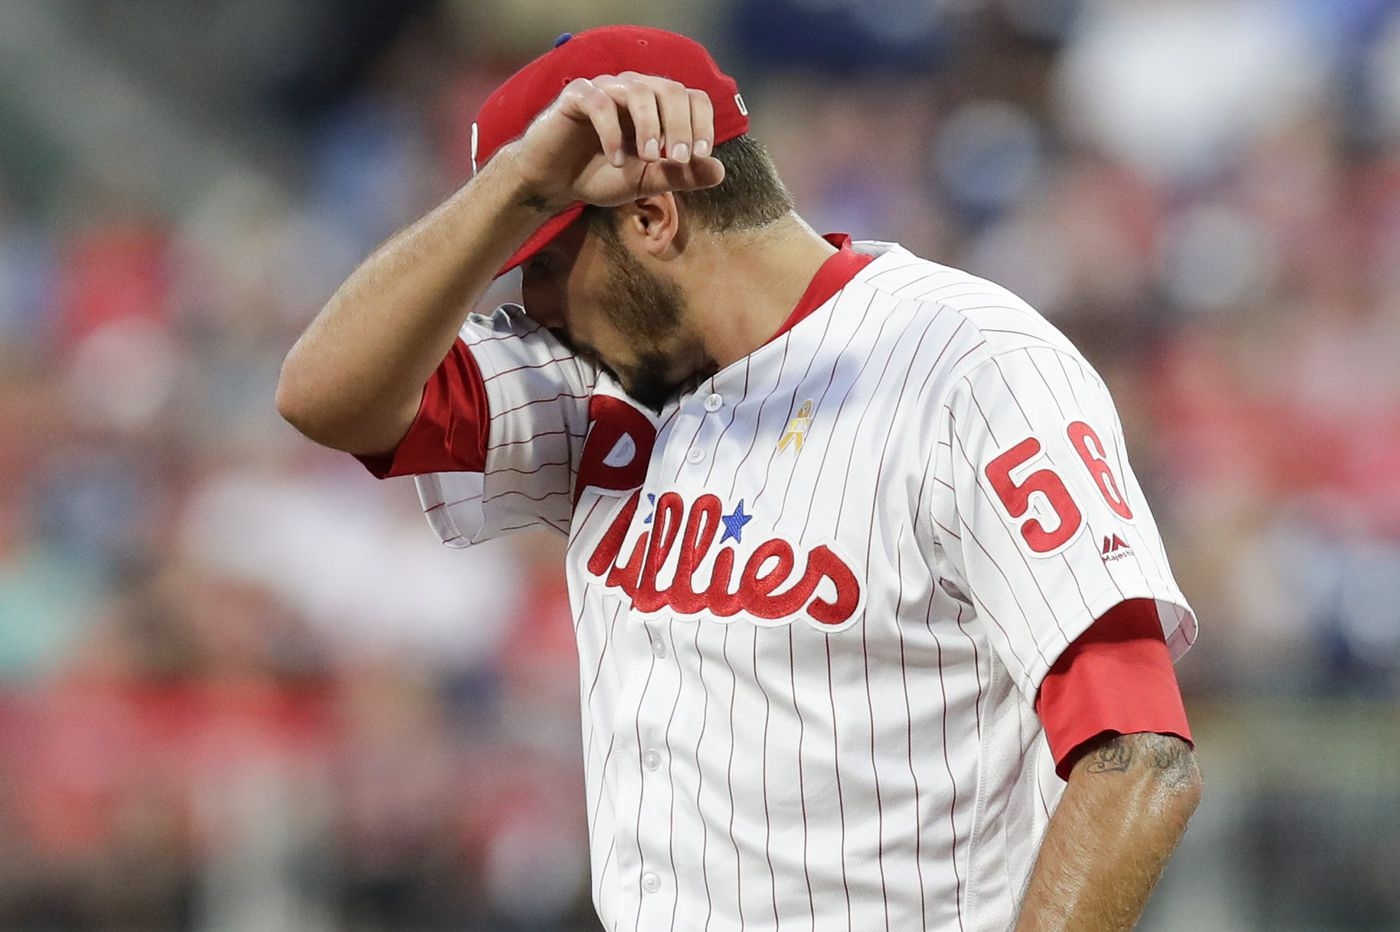 Phillies lose to Cubs as Zach Eflin's struggles on the mound continue